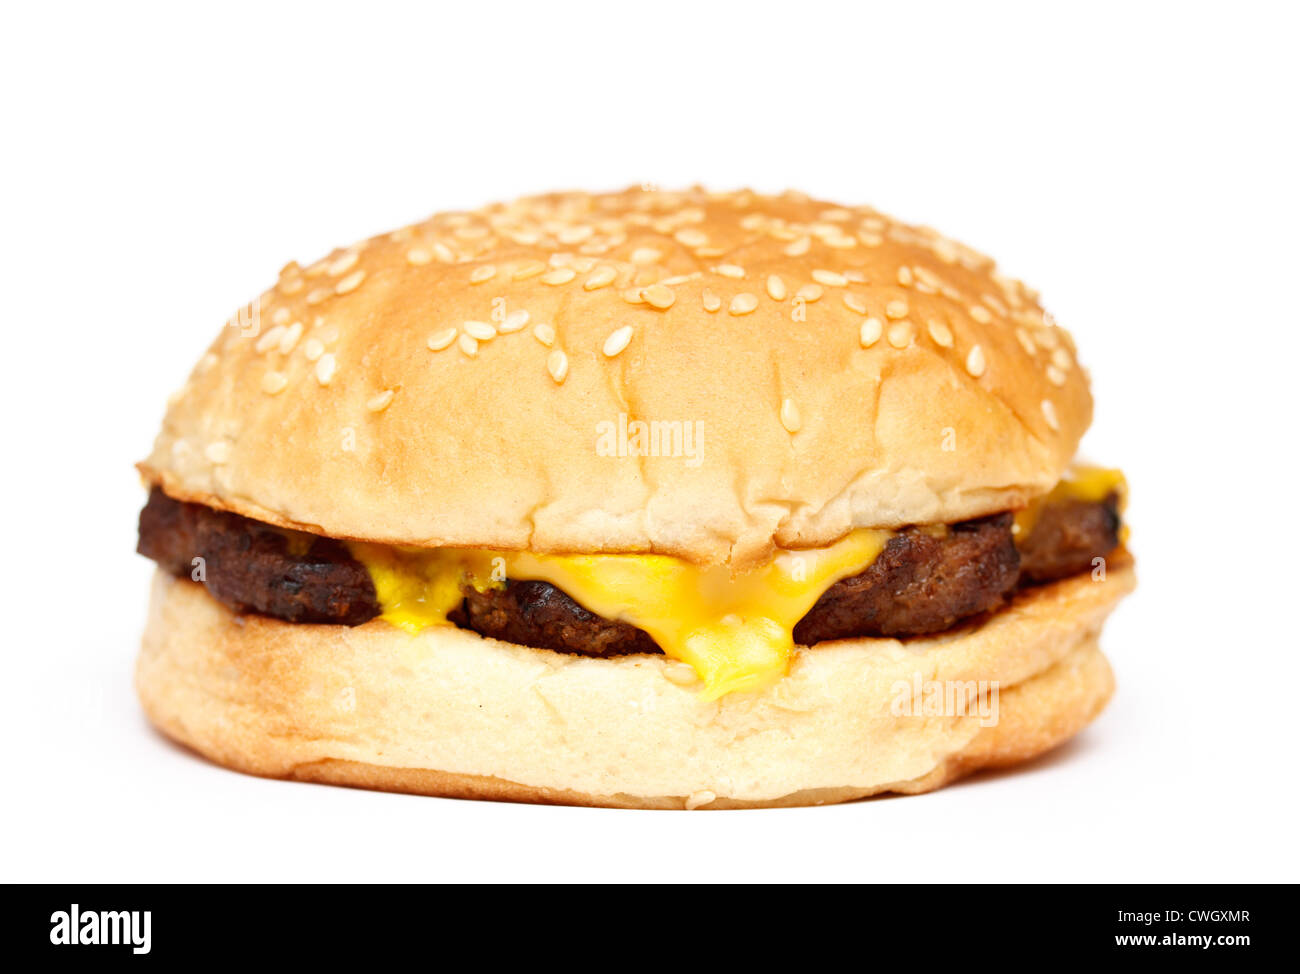 Fast food cheeseburger on white background - Stock Image